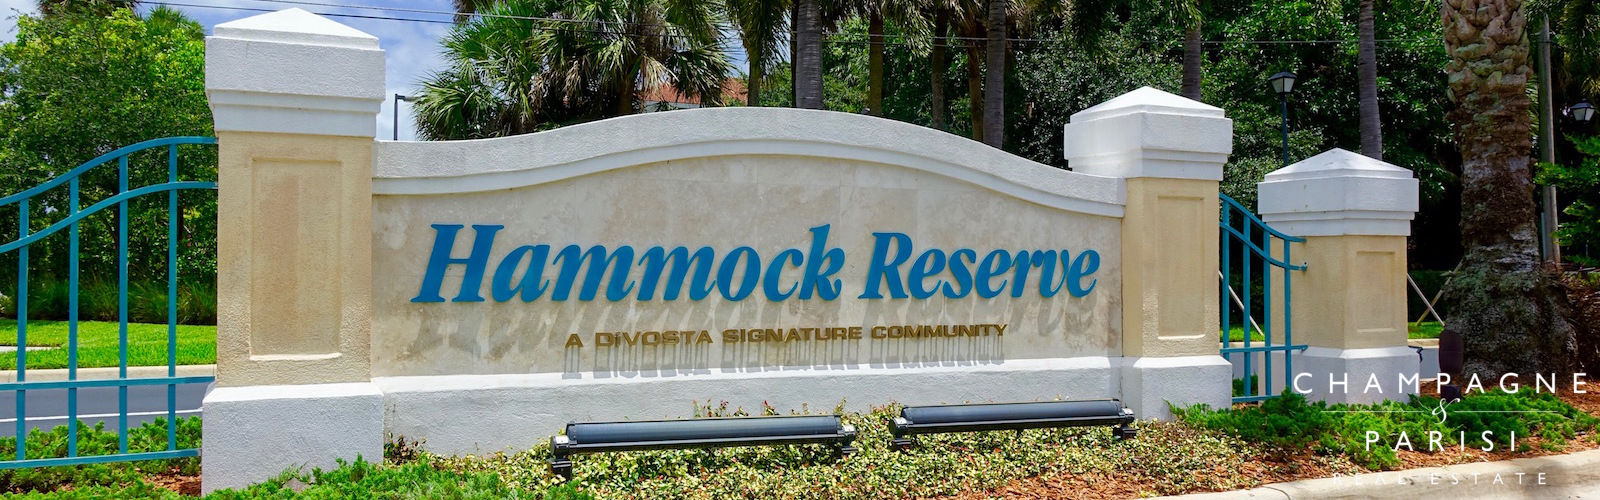 hammock reserve | delray beach homes for sale